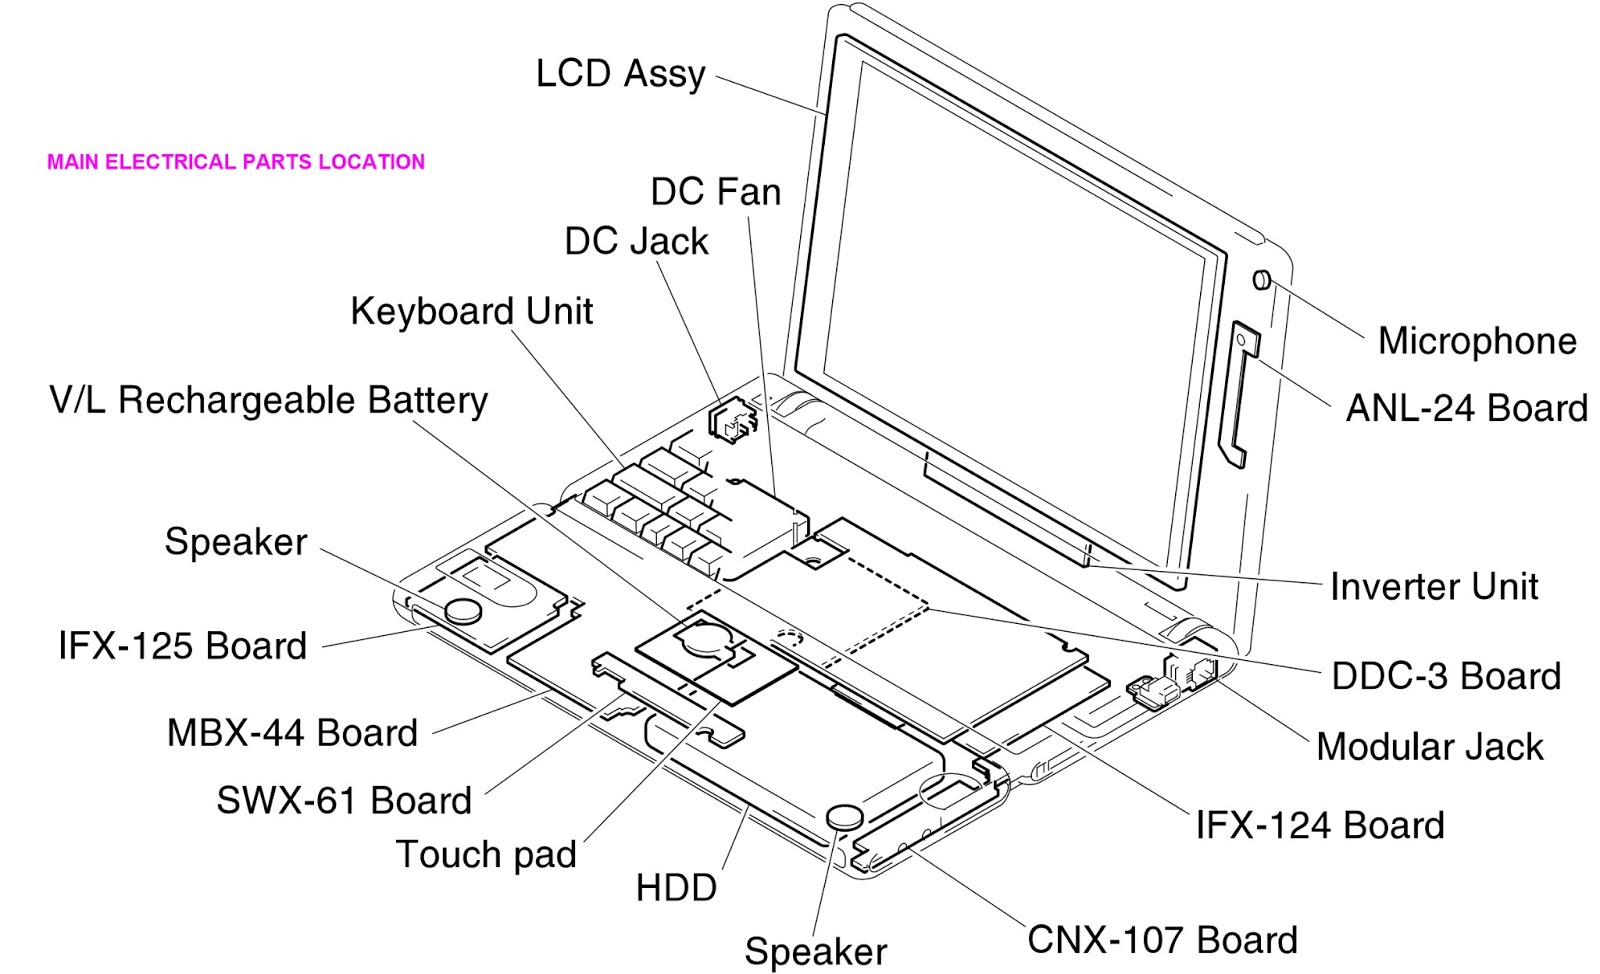 how to disassemble sony vaio pcg-sr27 - pcg-sr27k - disassembly procedure